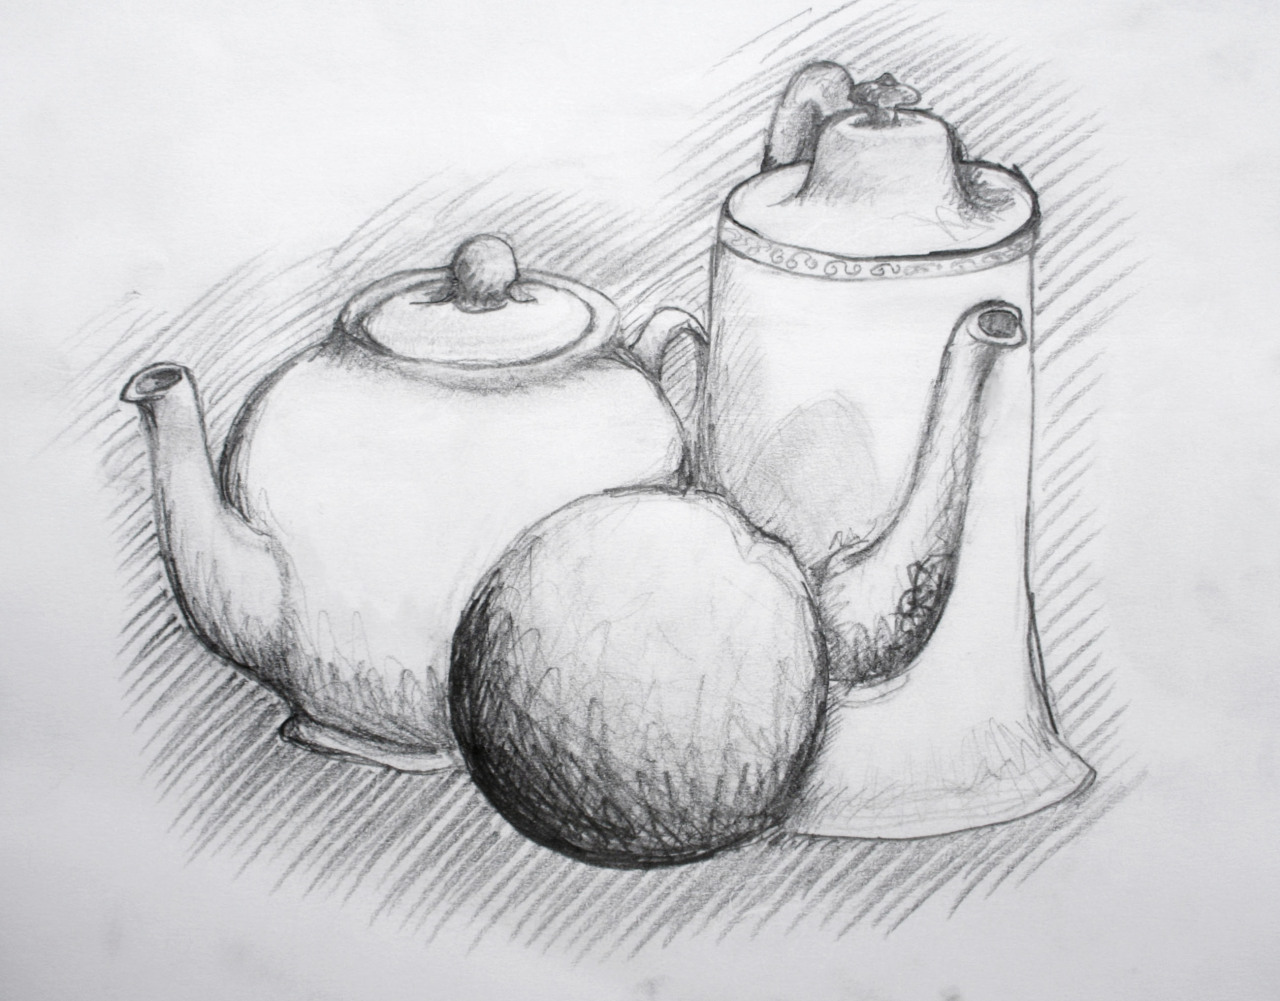 We sketched tea kettles and a fake citrus (I think it was supposed to be an orange) in art class a while ago… And I'm really bad at making sketches look good on the computer forgive me.  Pencil sketch